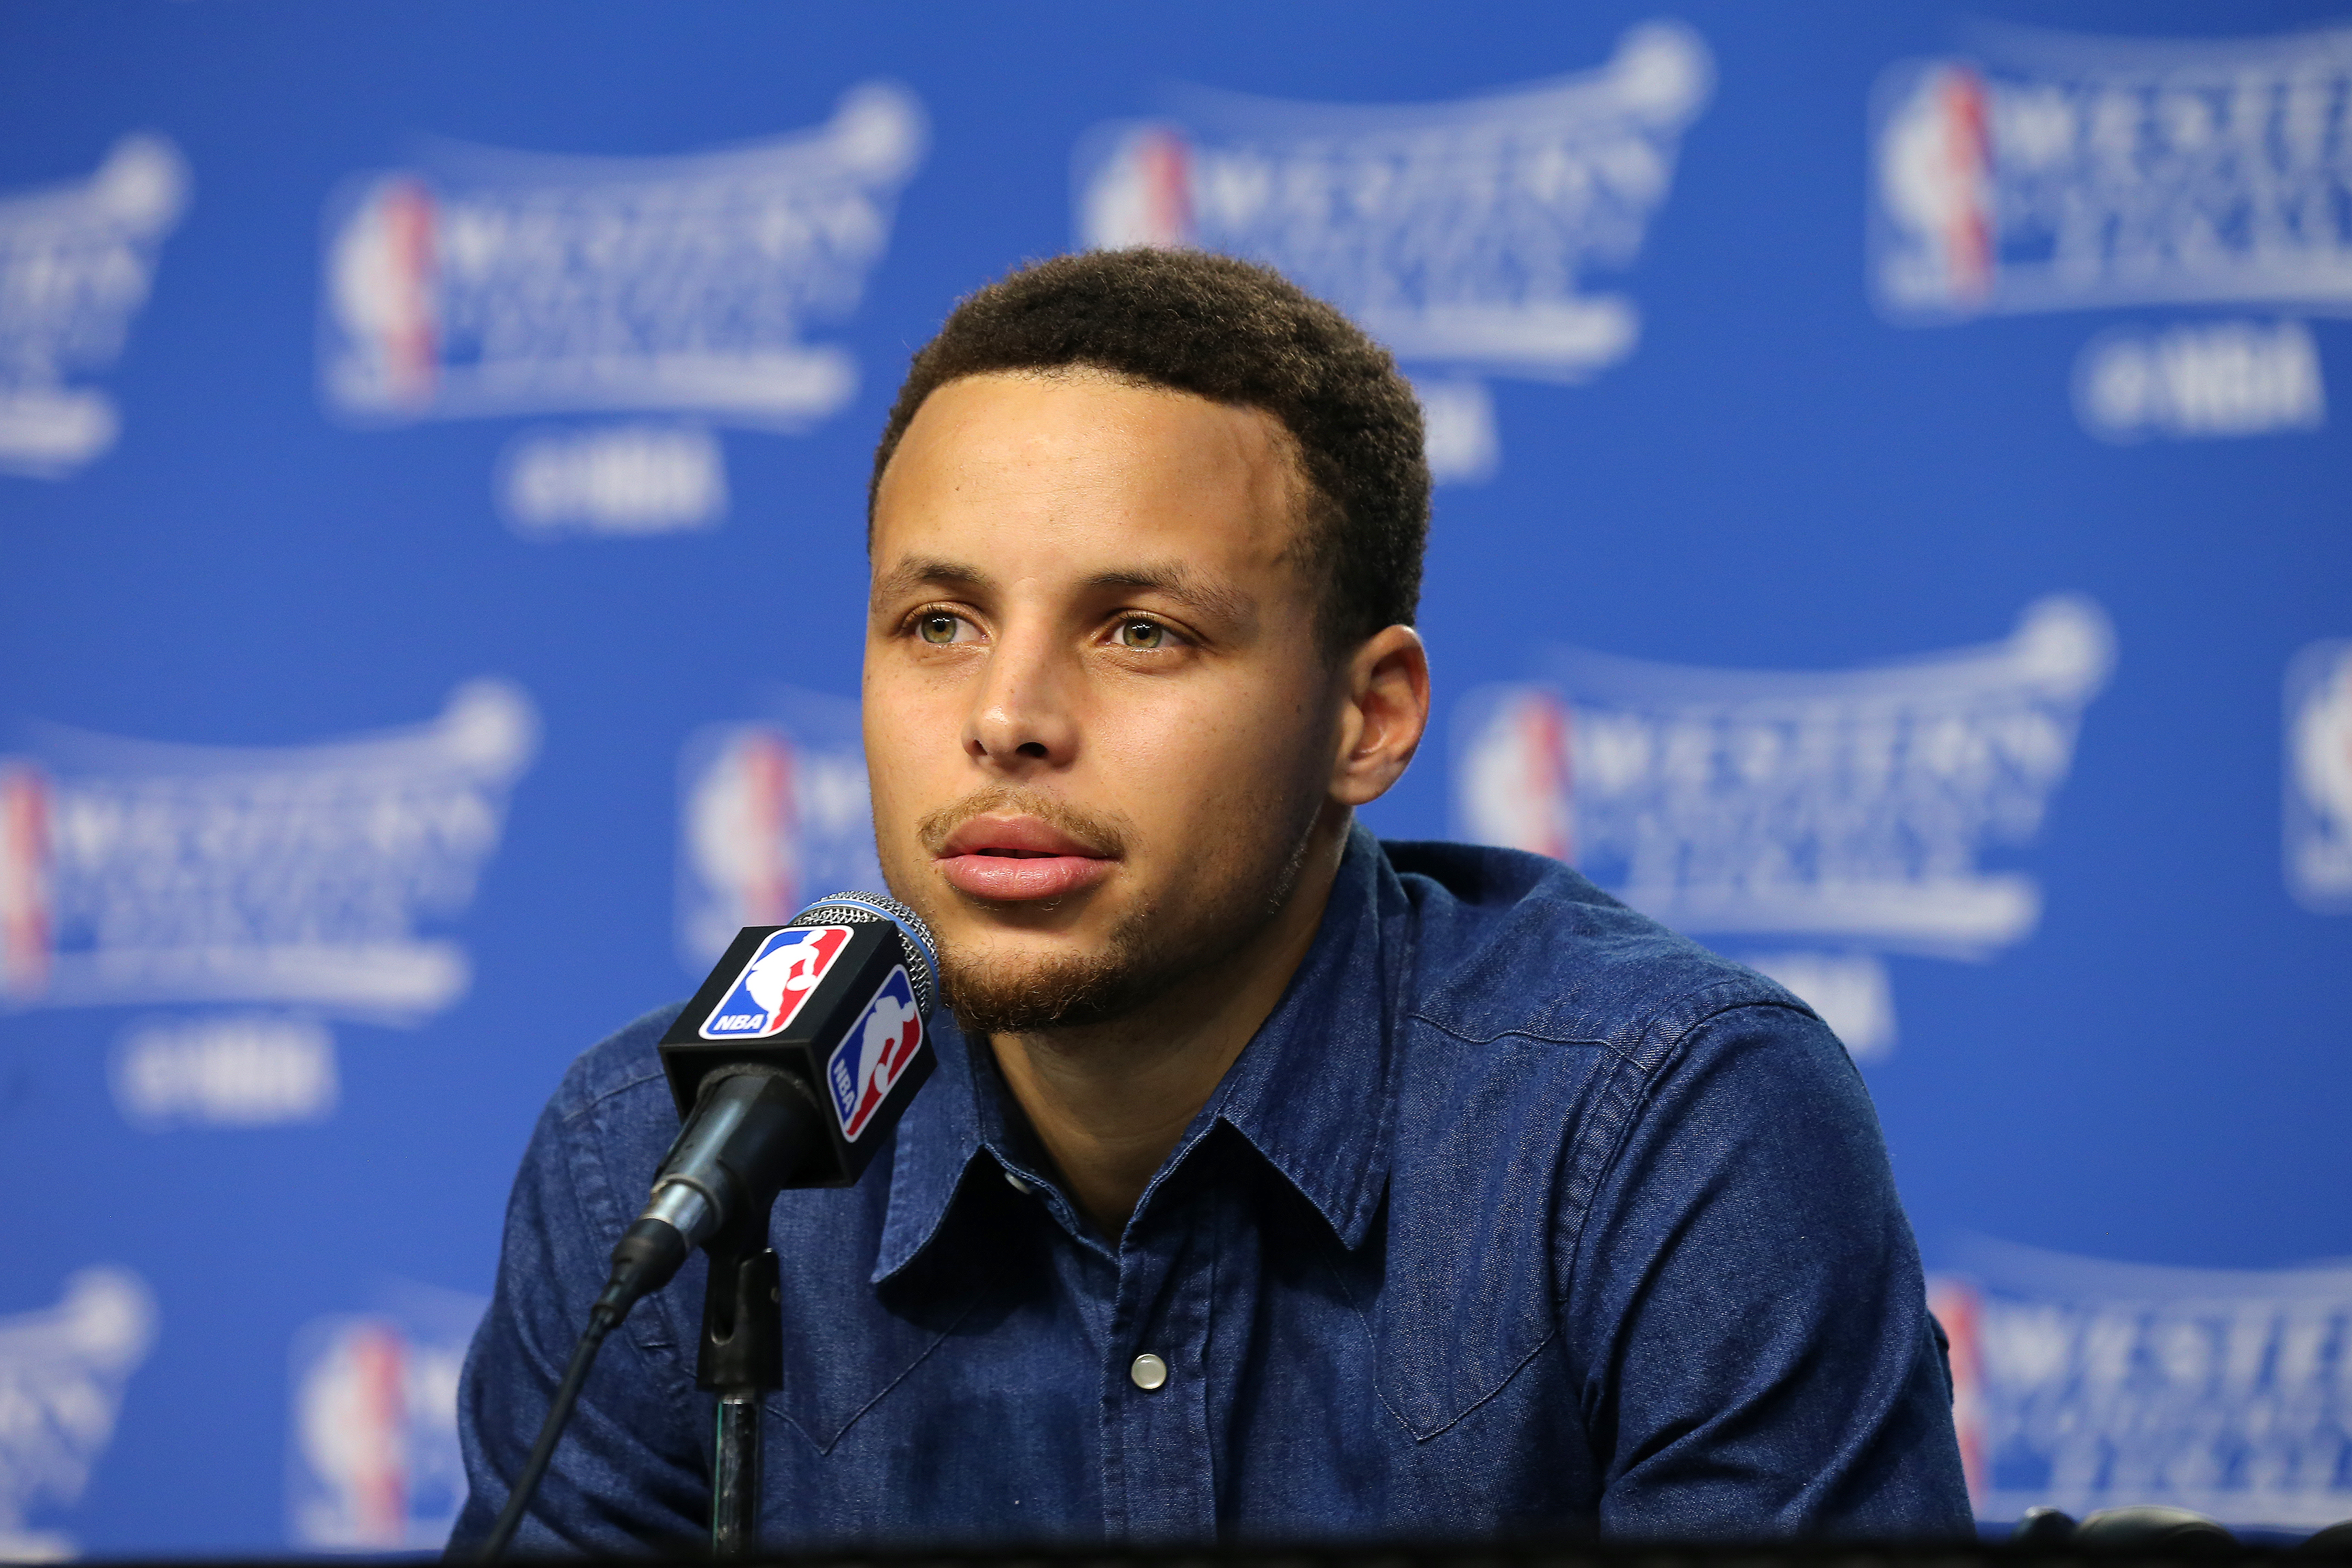 OKLAHOMA CITY, OK- MAY 24: Stephen Curry #30 of the Golden State Warriors talks with the press after the game against the Oklahoma City Thunder in Game Four of the Western Conference Finals during the 2016 NBA Playoffs on May 24, 2016 at Chesapeake Energy